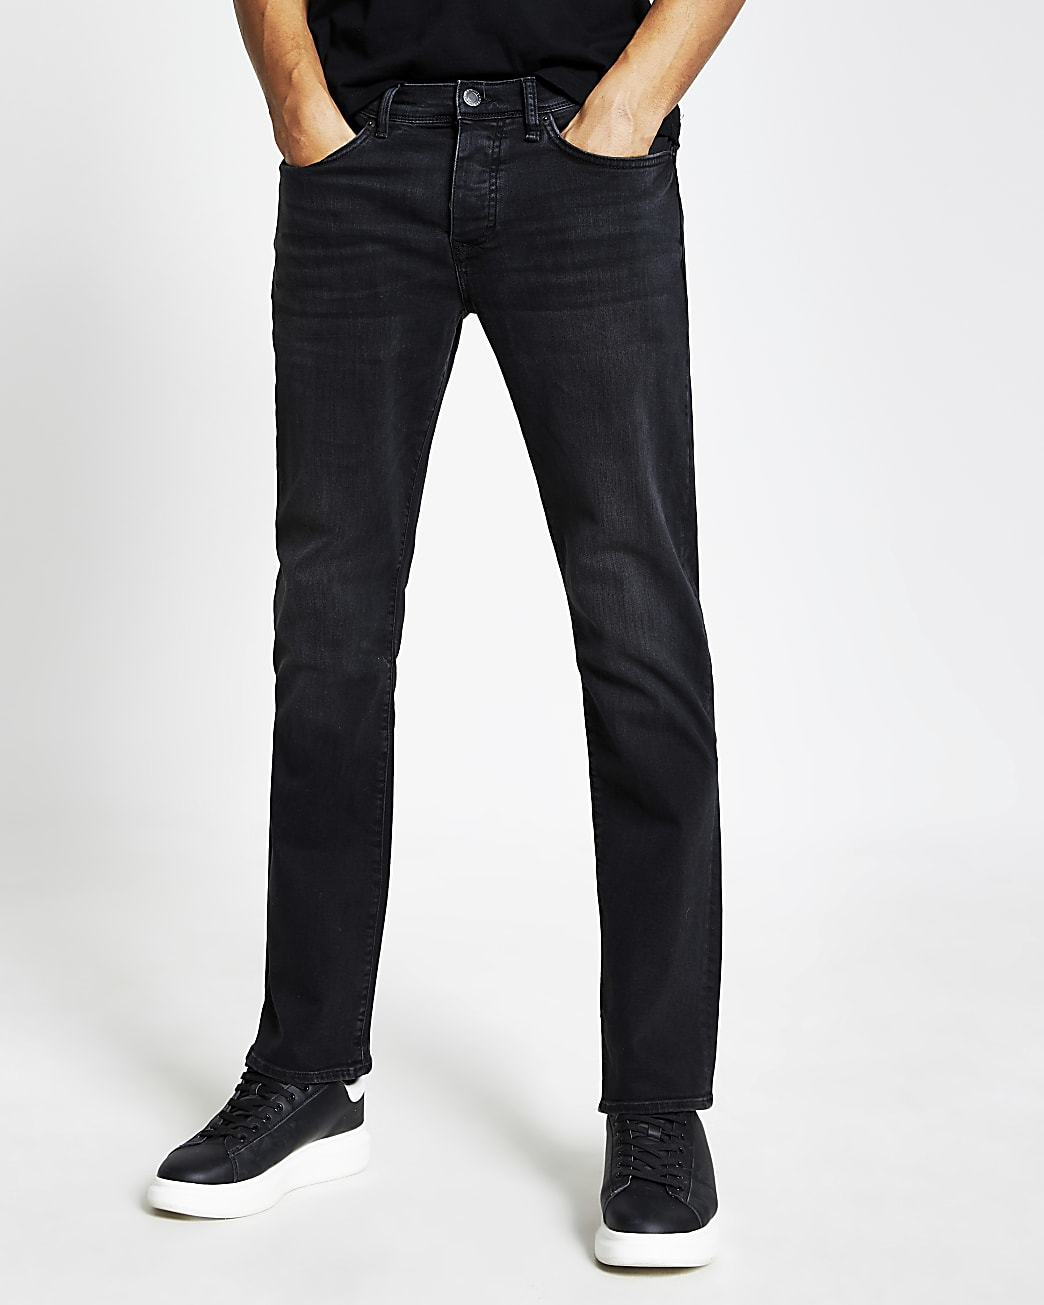 Black washed bootcut fit jeans